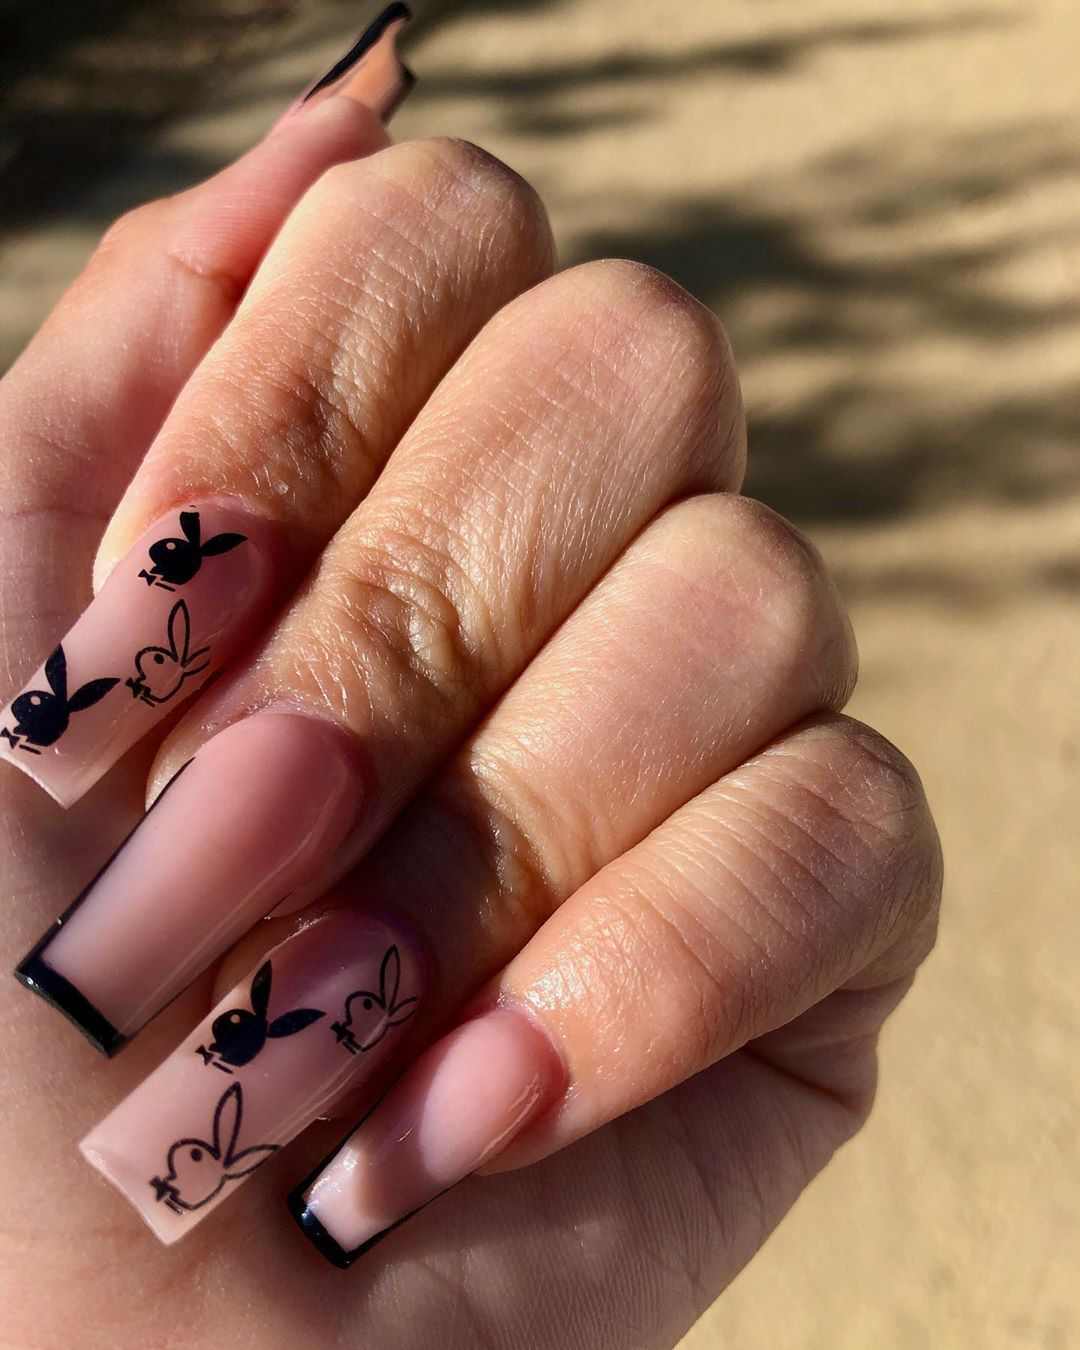 Vanessa On Instagram Simple Lil Freestyle Using Valentinobeautypure Valentinobeautypure In 2020 Stylish Nails Designs Rhinestone Nails Black Acrylic Nails